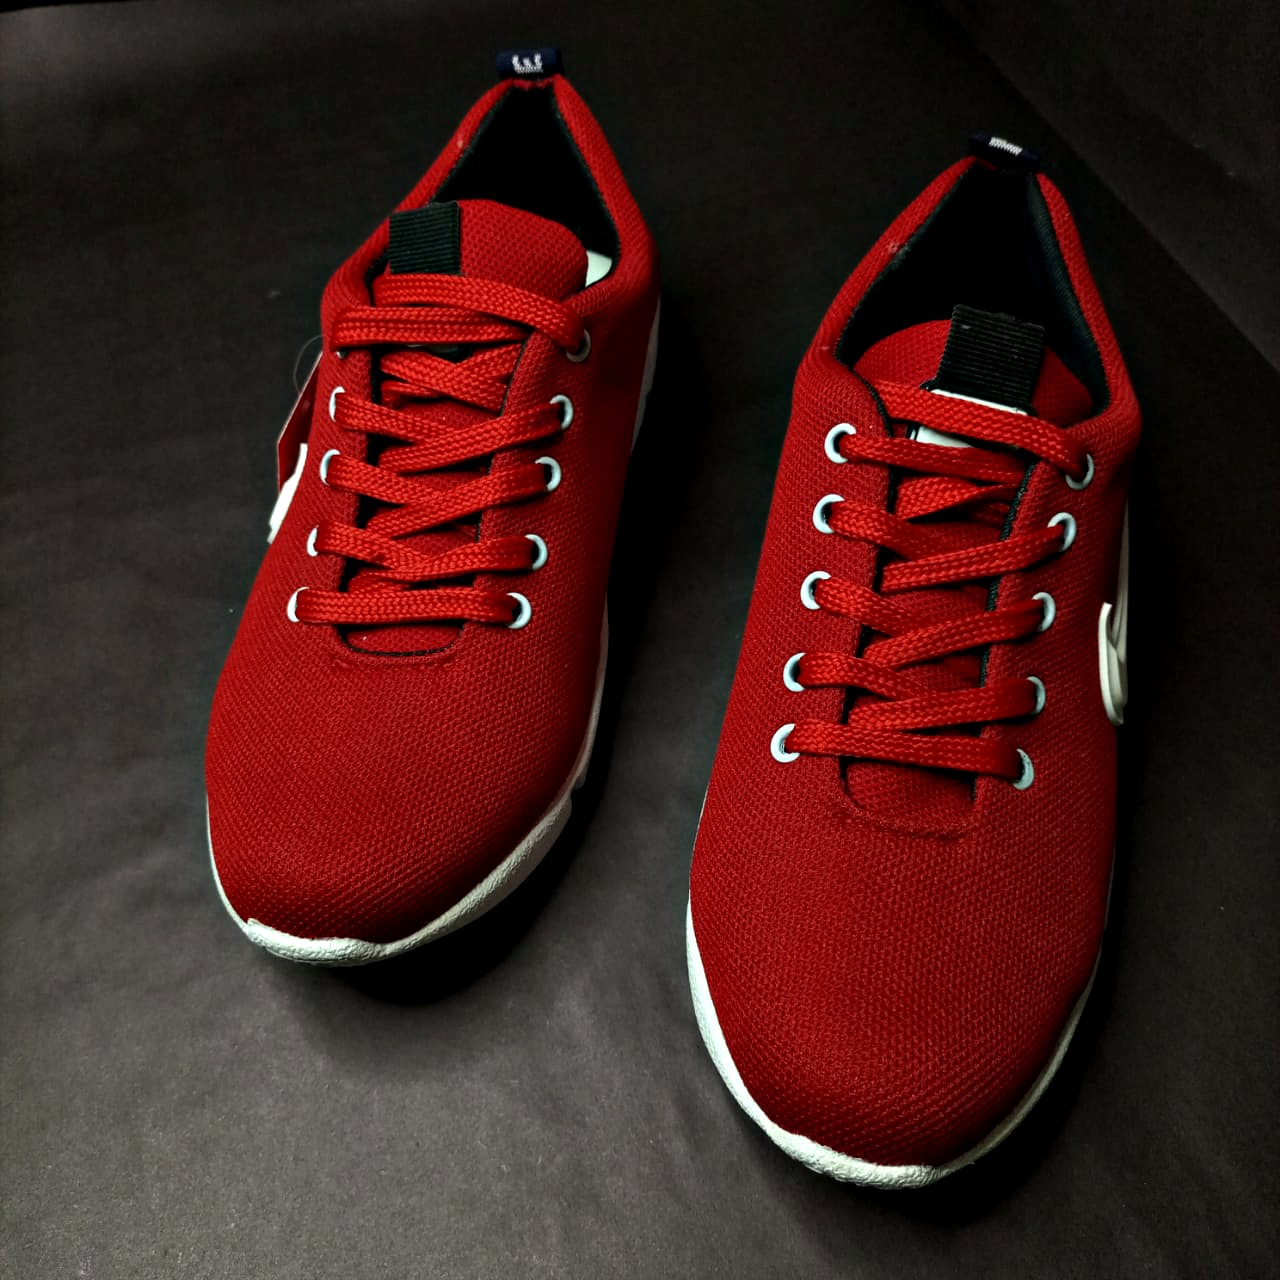 (MK) Grey & Red - Synthetic Material Sneakers for Men HOCK004